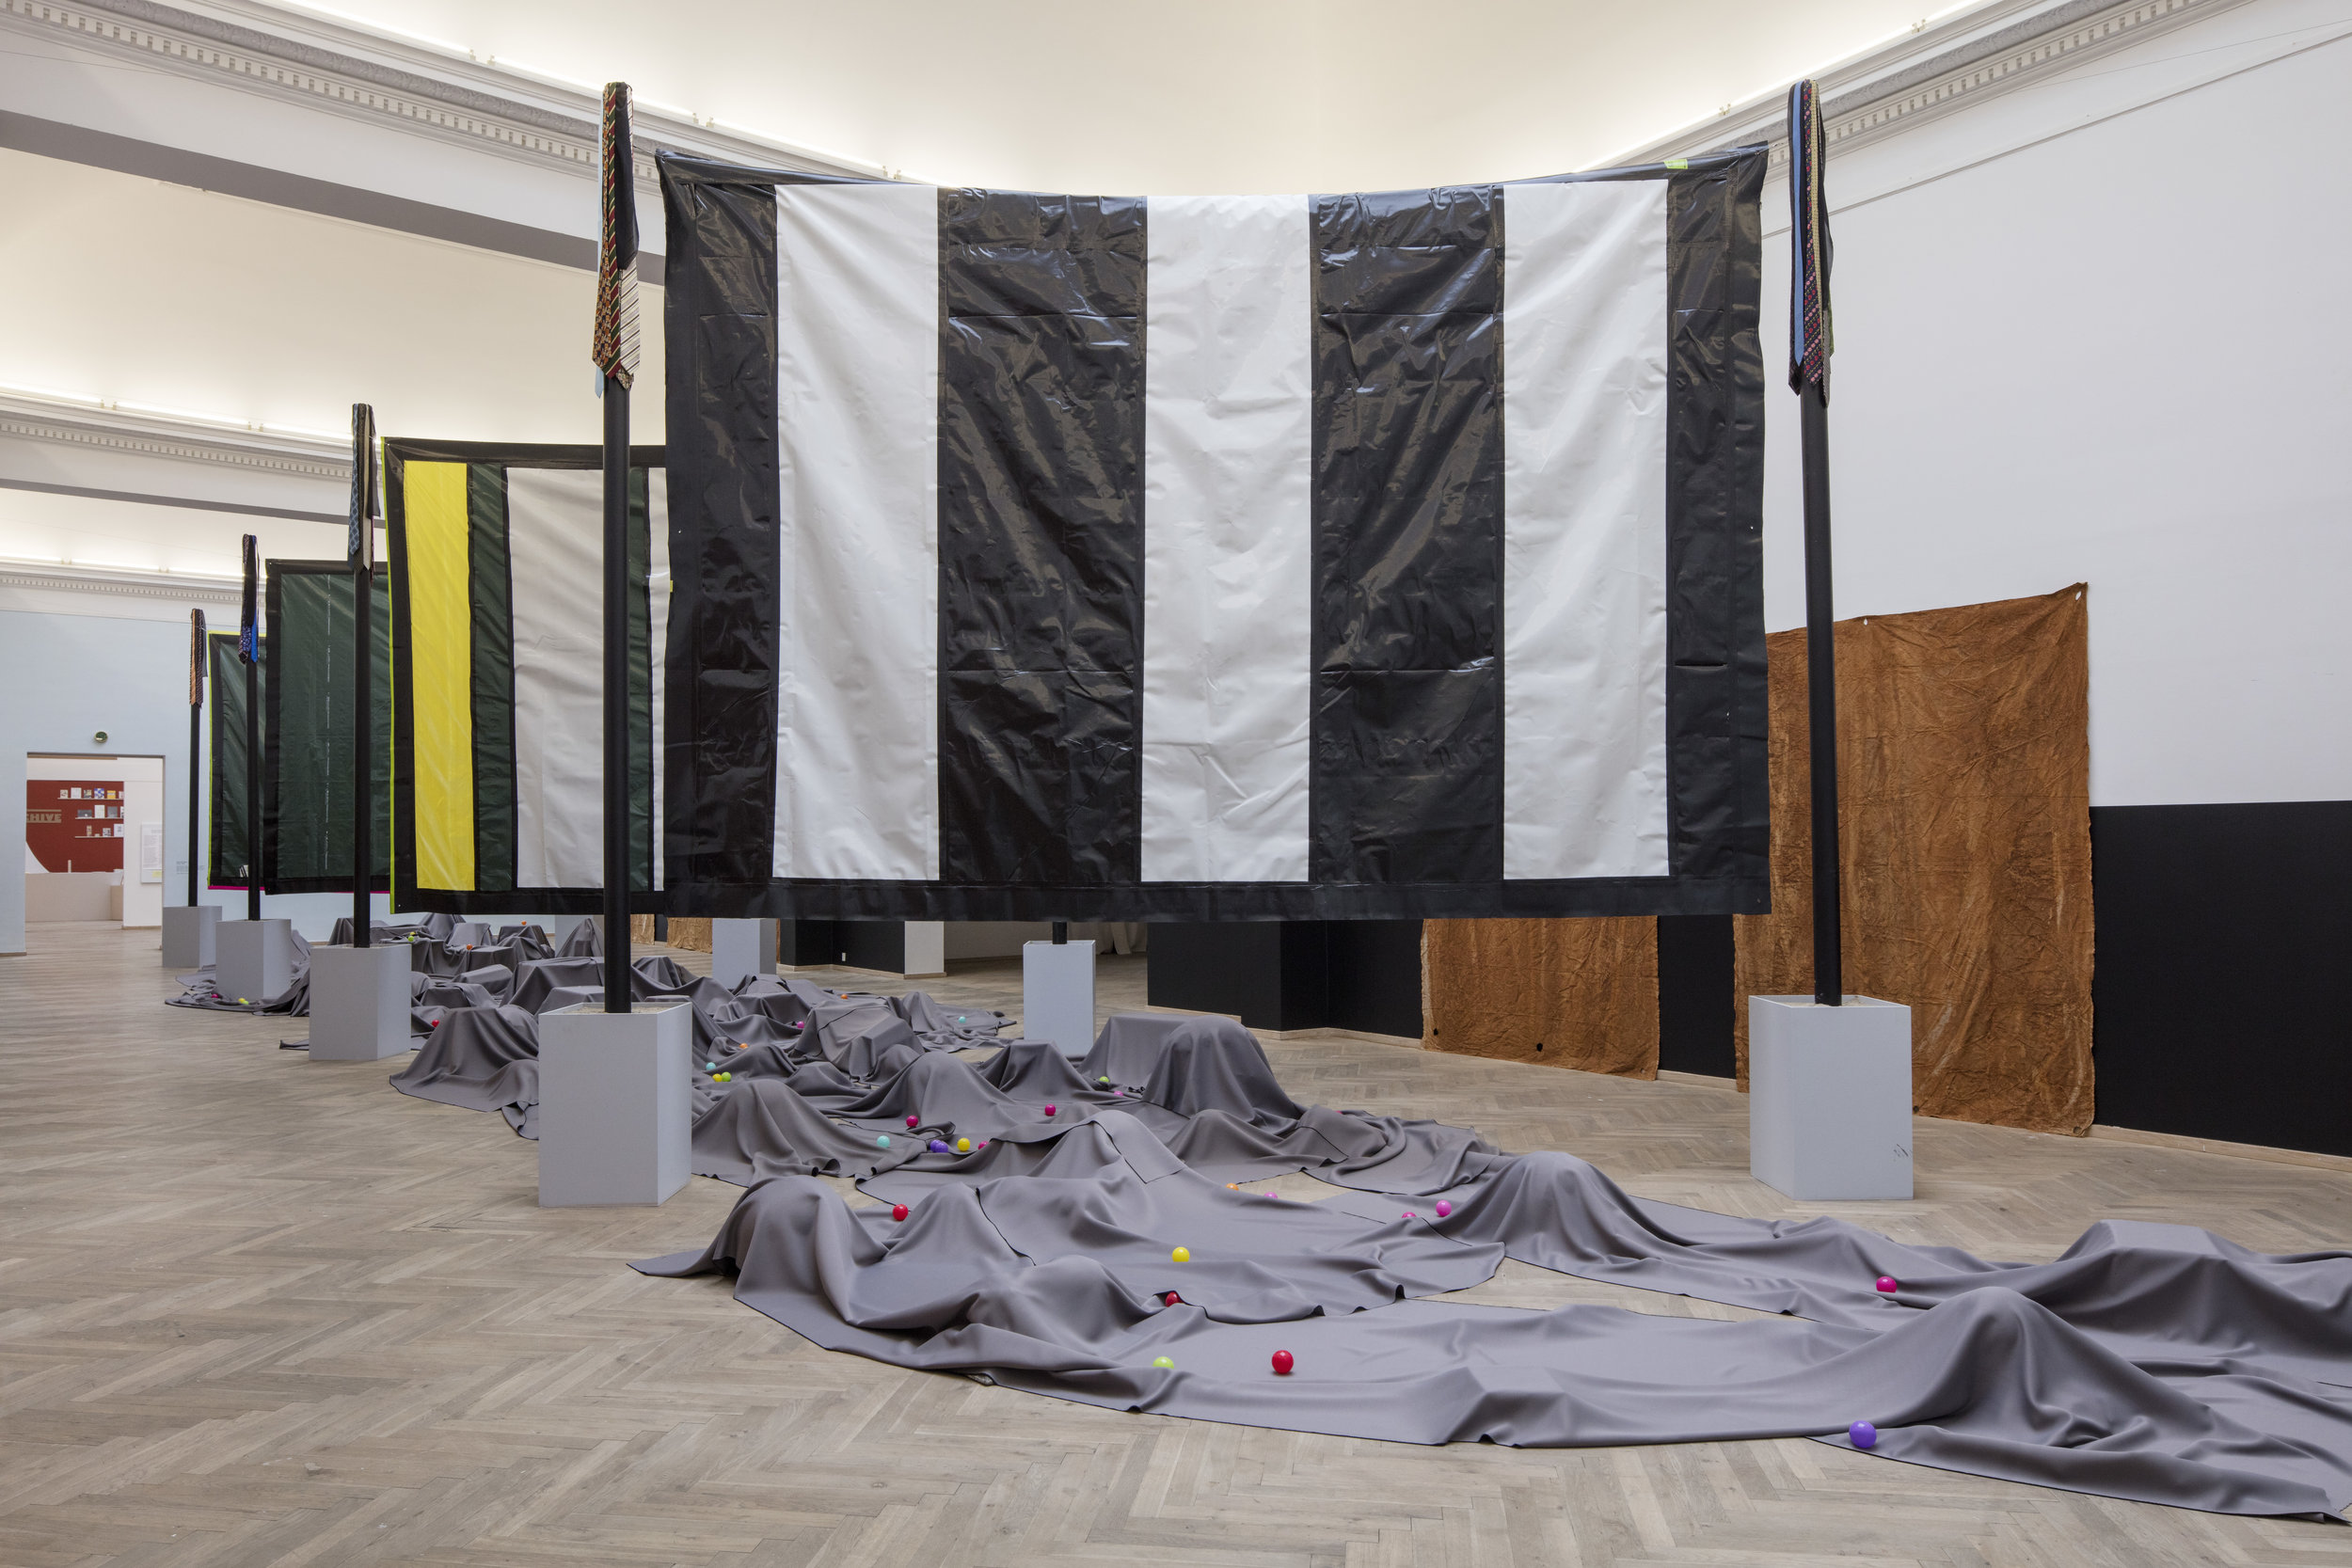 Moshekwa Langa. Mine. Installation View, Kunsthal Charlottenborg 2016. Featured in  An Age of our Own Making. Photo by Anders Sune Berg.